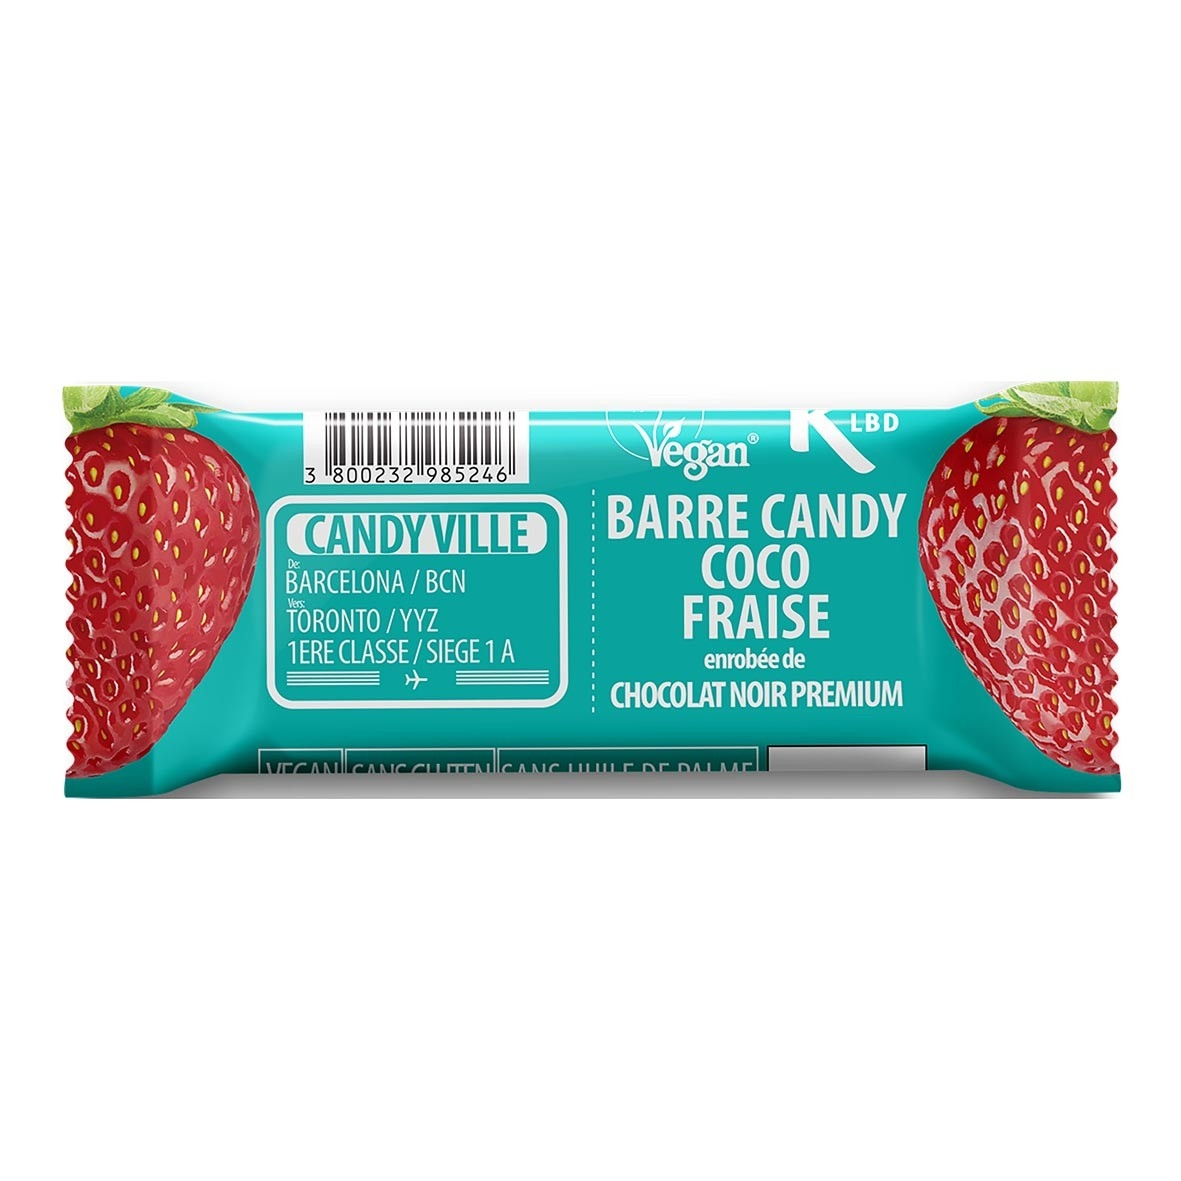 Barre Candy Coco Fraise 50g Bio - Candy Ville